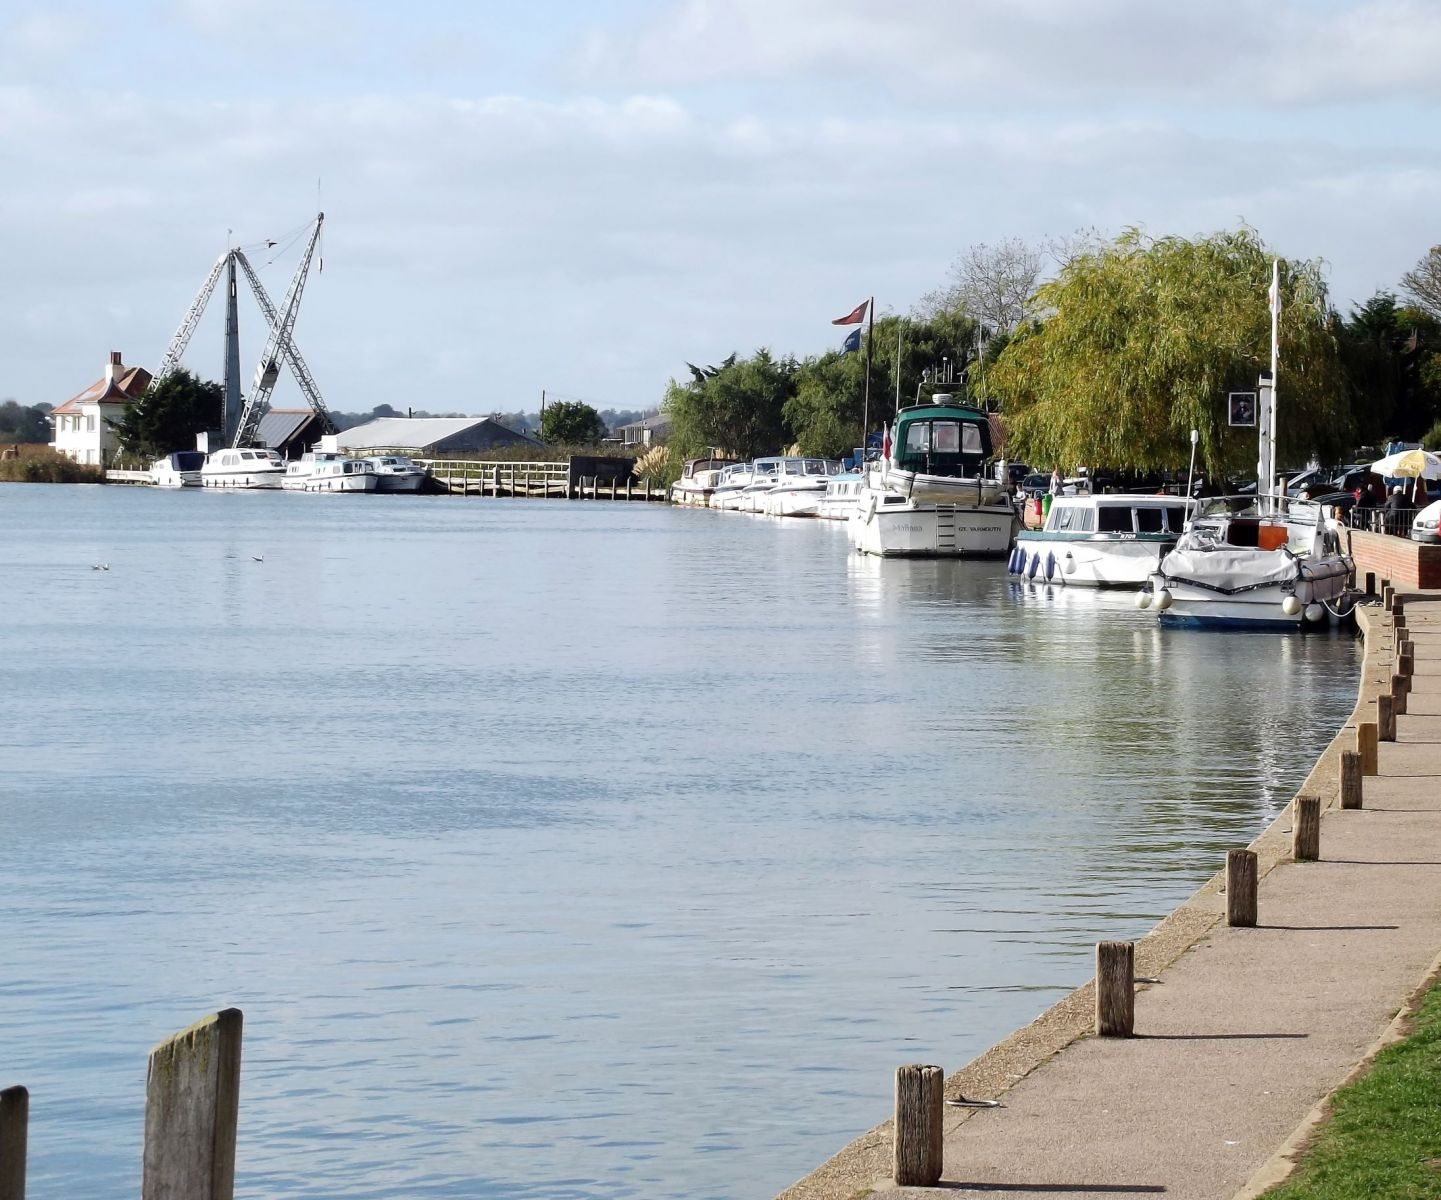 Reedham Quay by Paul Dickson